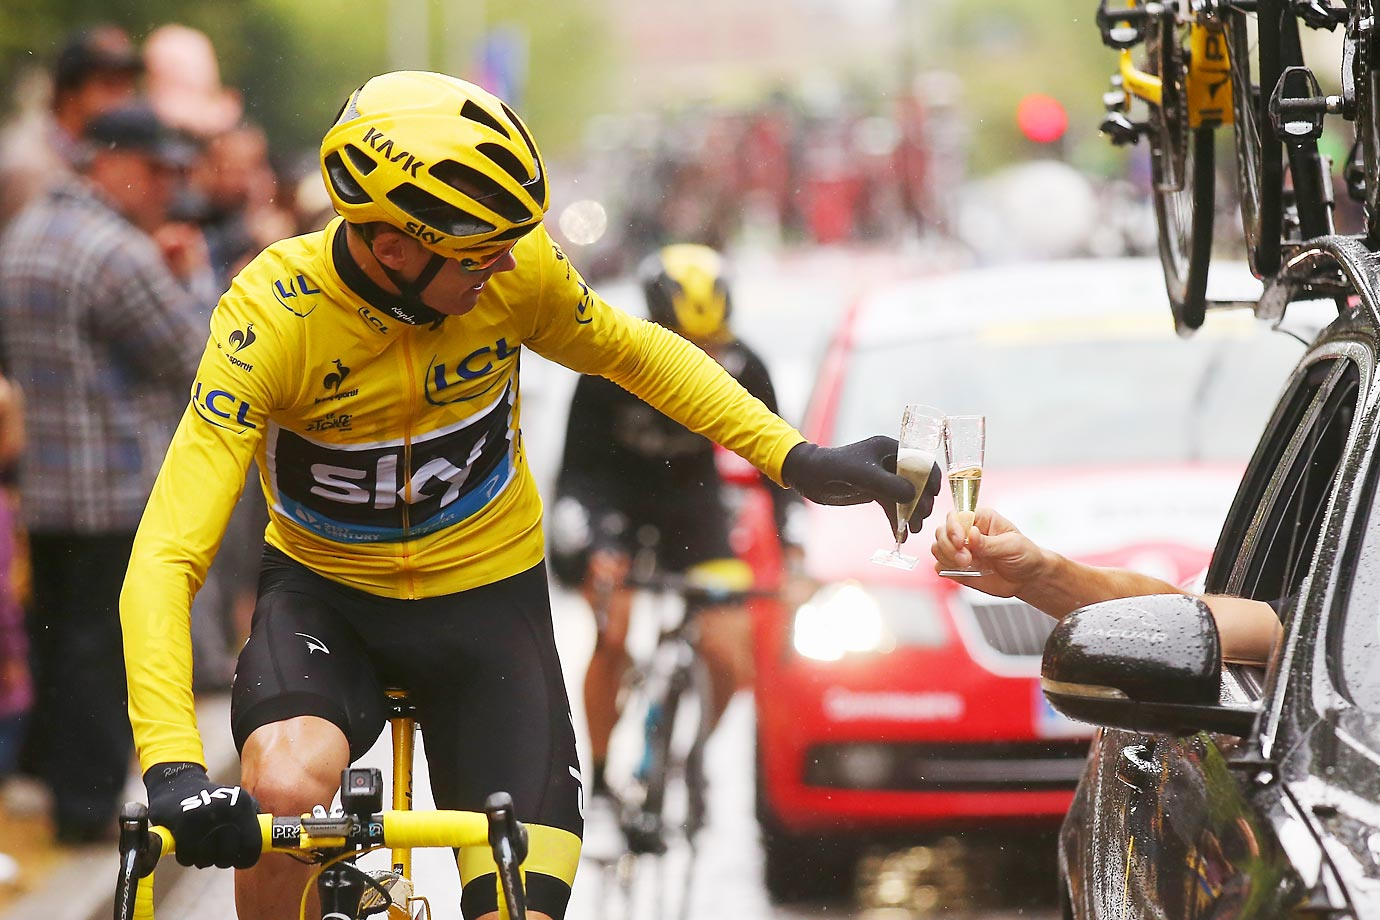 Chris Froome celebrates his Tour de France win with a glass of champagne.